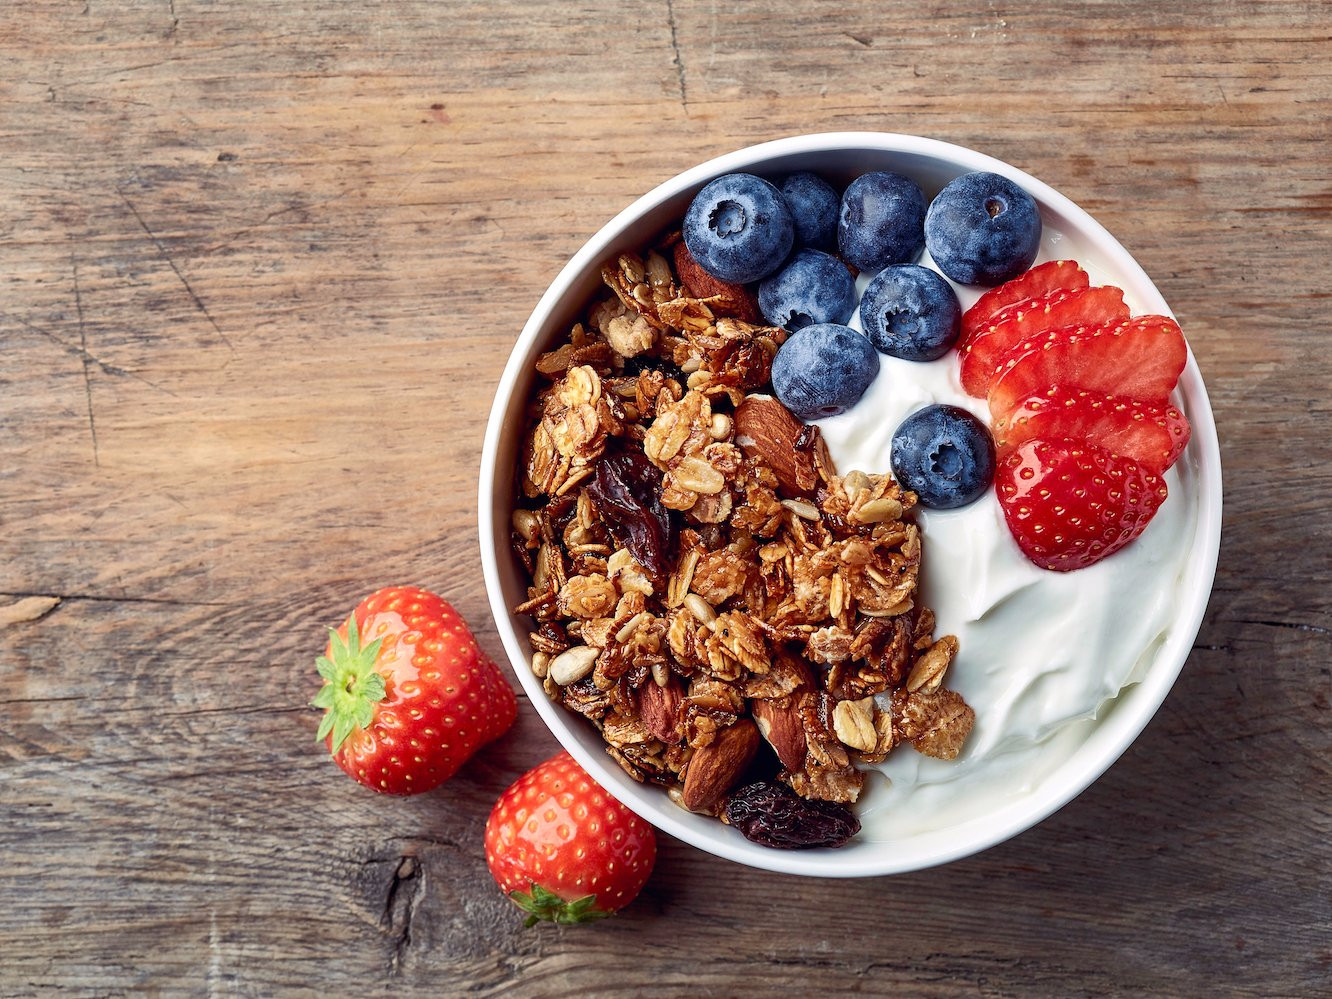 Healthy Breakfast Foods To Eat  Healthy foods to eat for breakfast Business Insider